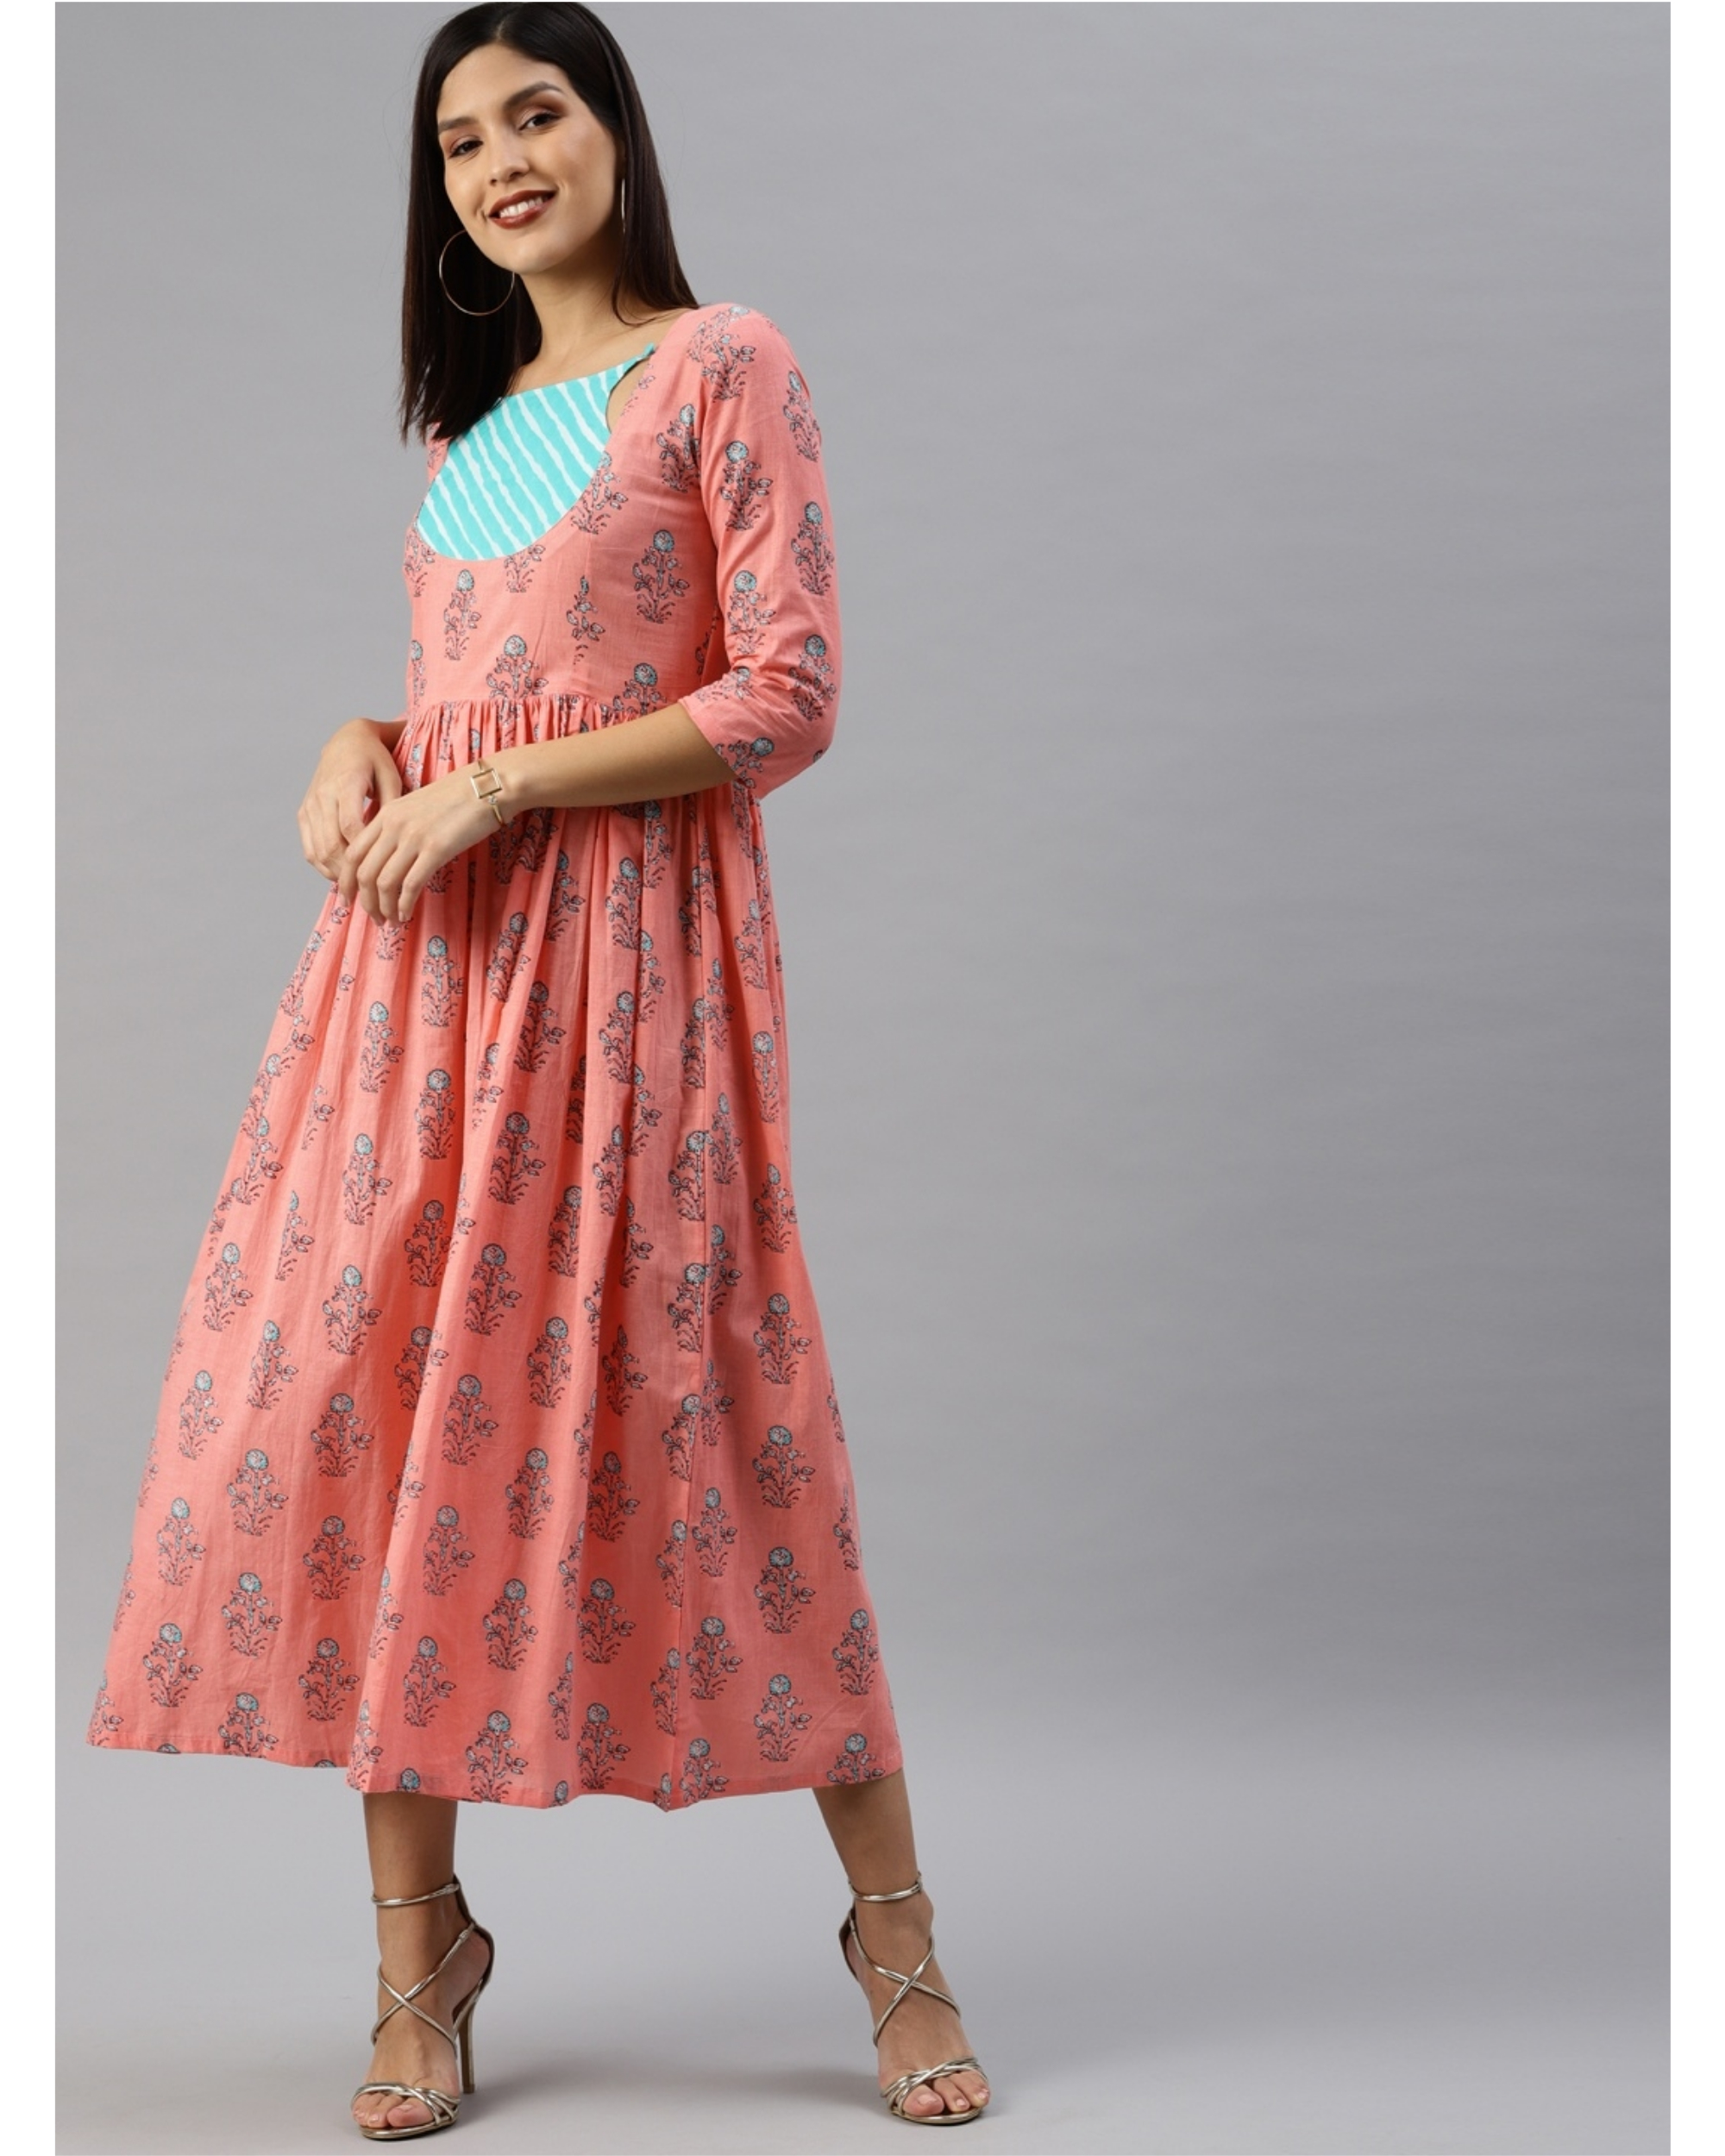 Peach printed a-line dress with turquoise yoke